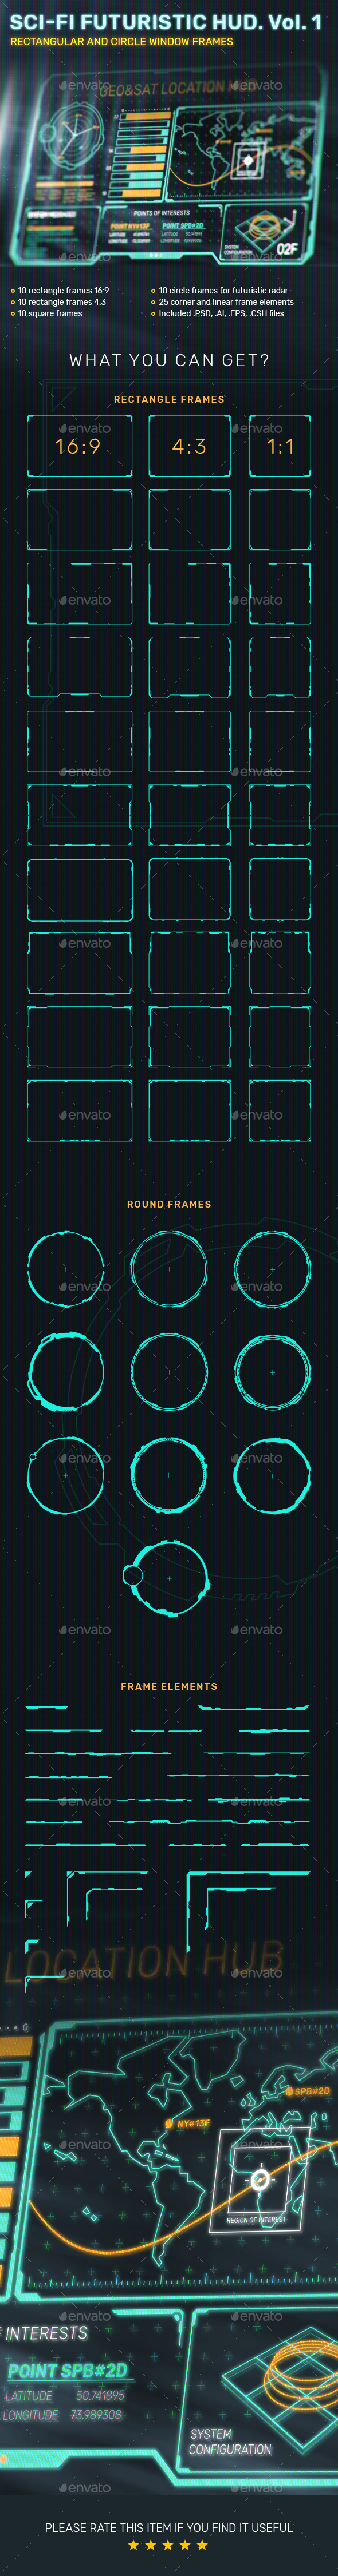 Sci-Fi Futuristic HUD. Vol. 1: Rectangular And Circle Window Frames - Technology Conceptual